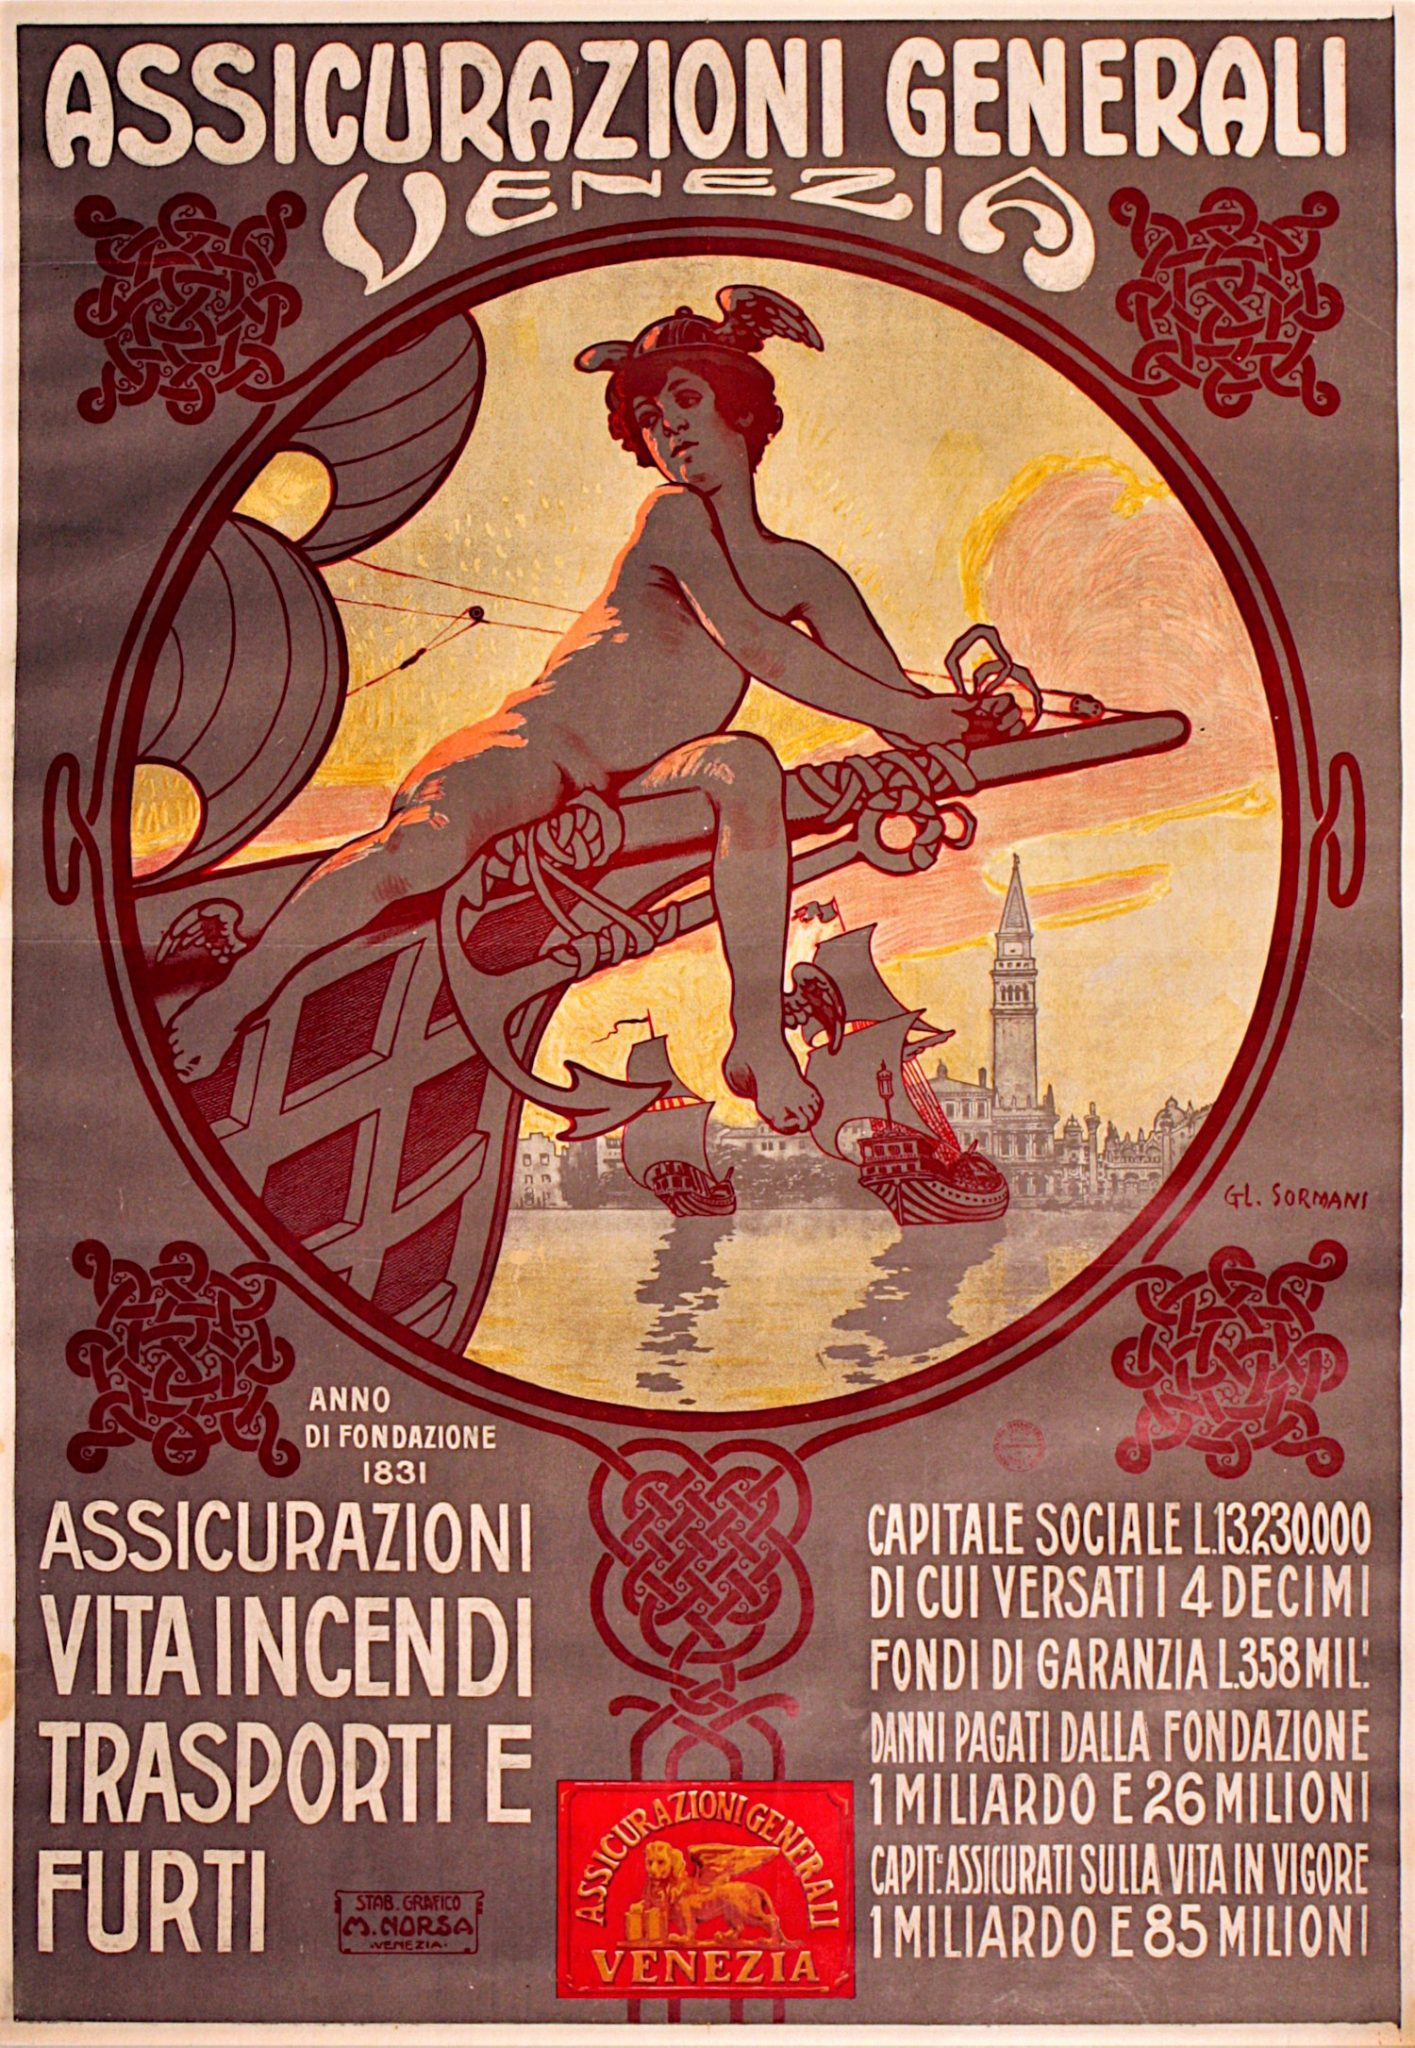 Gian Luciano Sormani, Advertising Poster of Assicurazioni Generali Venezia (1910) / ph. Massimo Goina